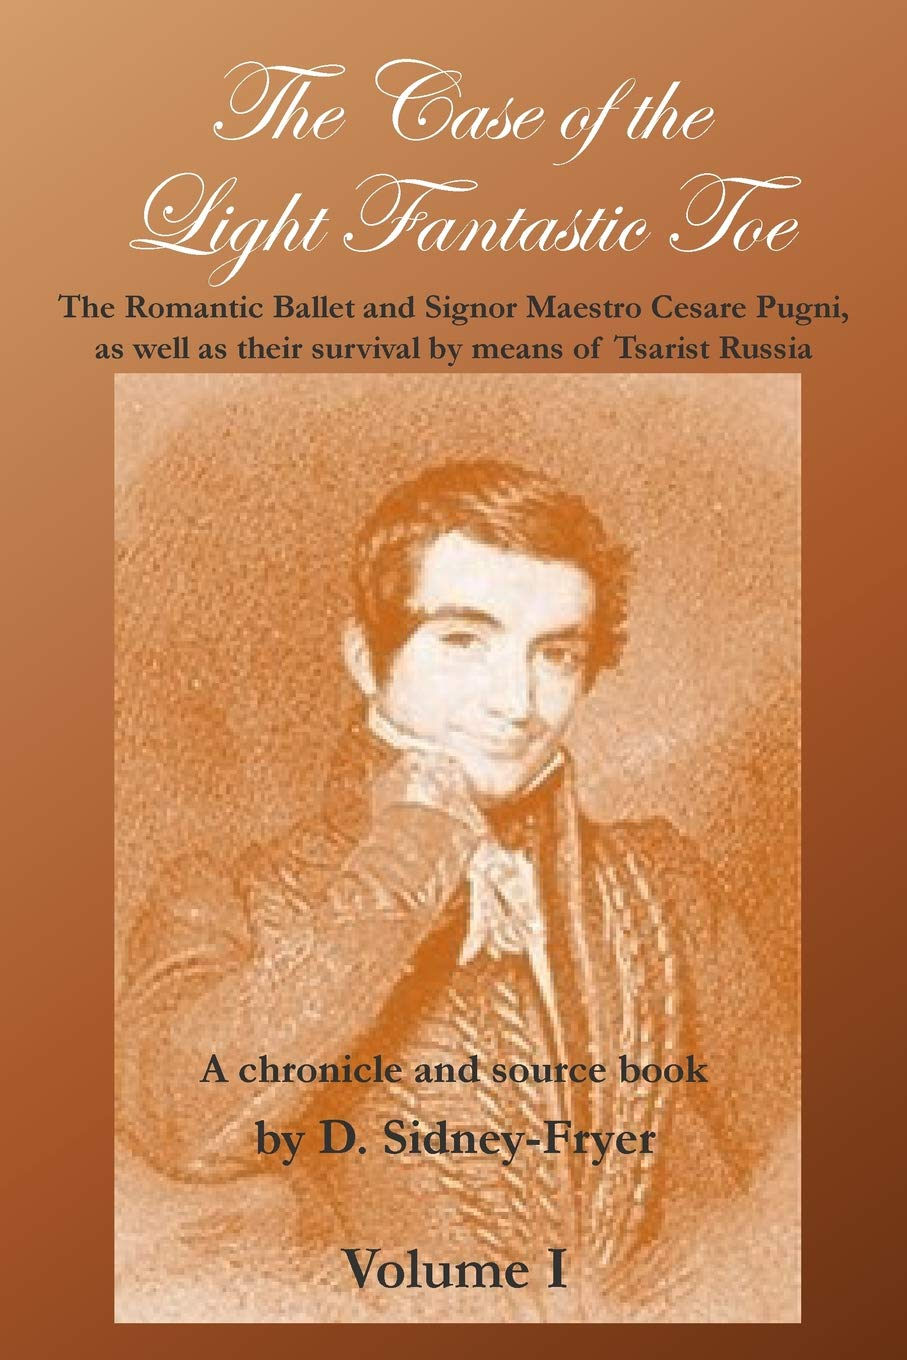 Download The Case of the Light Fantastic Toe, Vol. I: The Romantic Ballet and Signor Maestro Cesare Pugni, as well as their survival by means of Tsarist Russia: A chronicle and source book (Volume 1) pdf epub